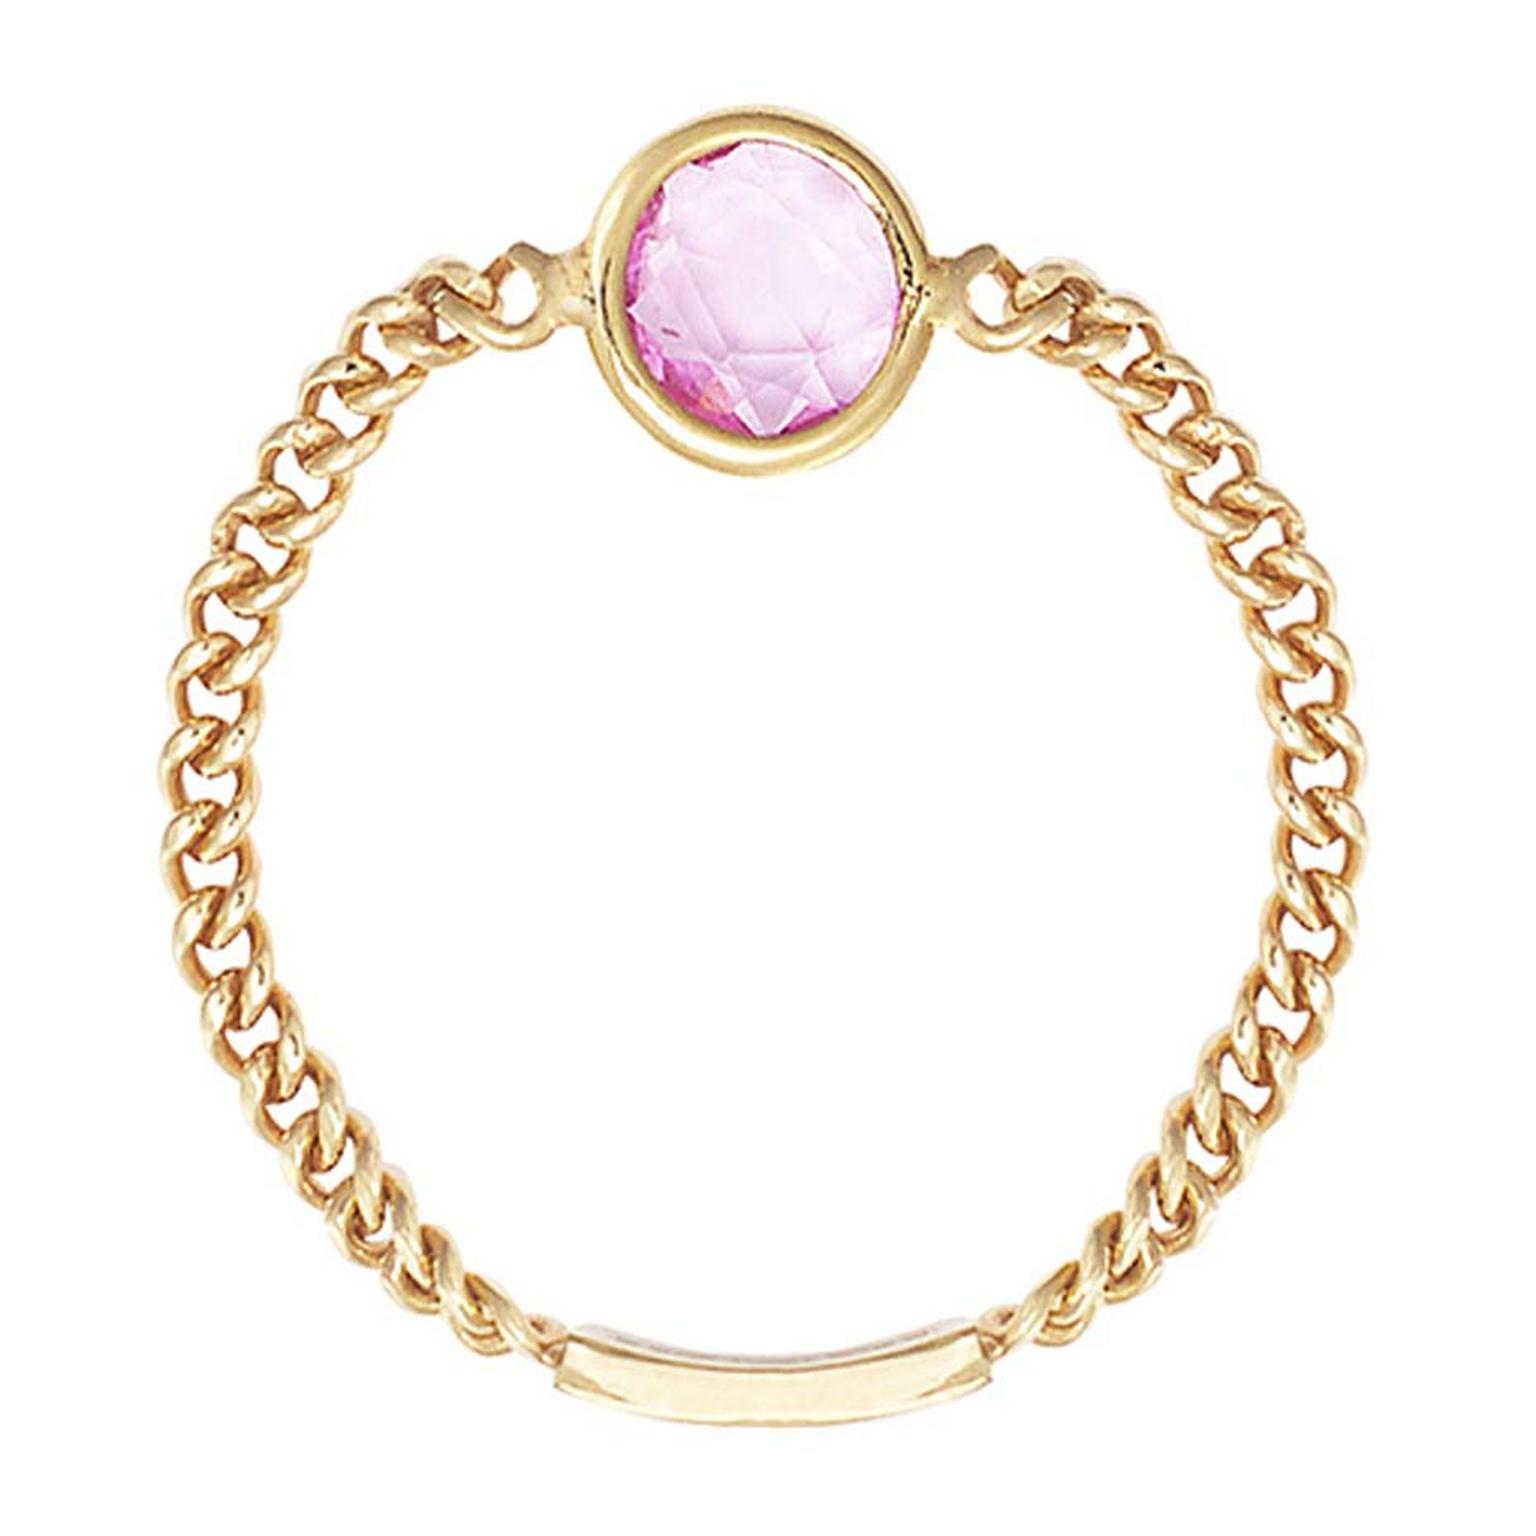 Sweet Pea rose-cut pink sapphire Chain ring in gold.